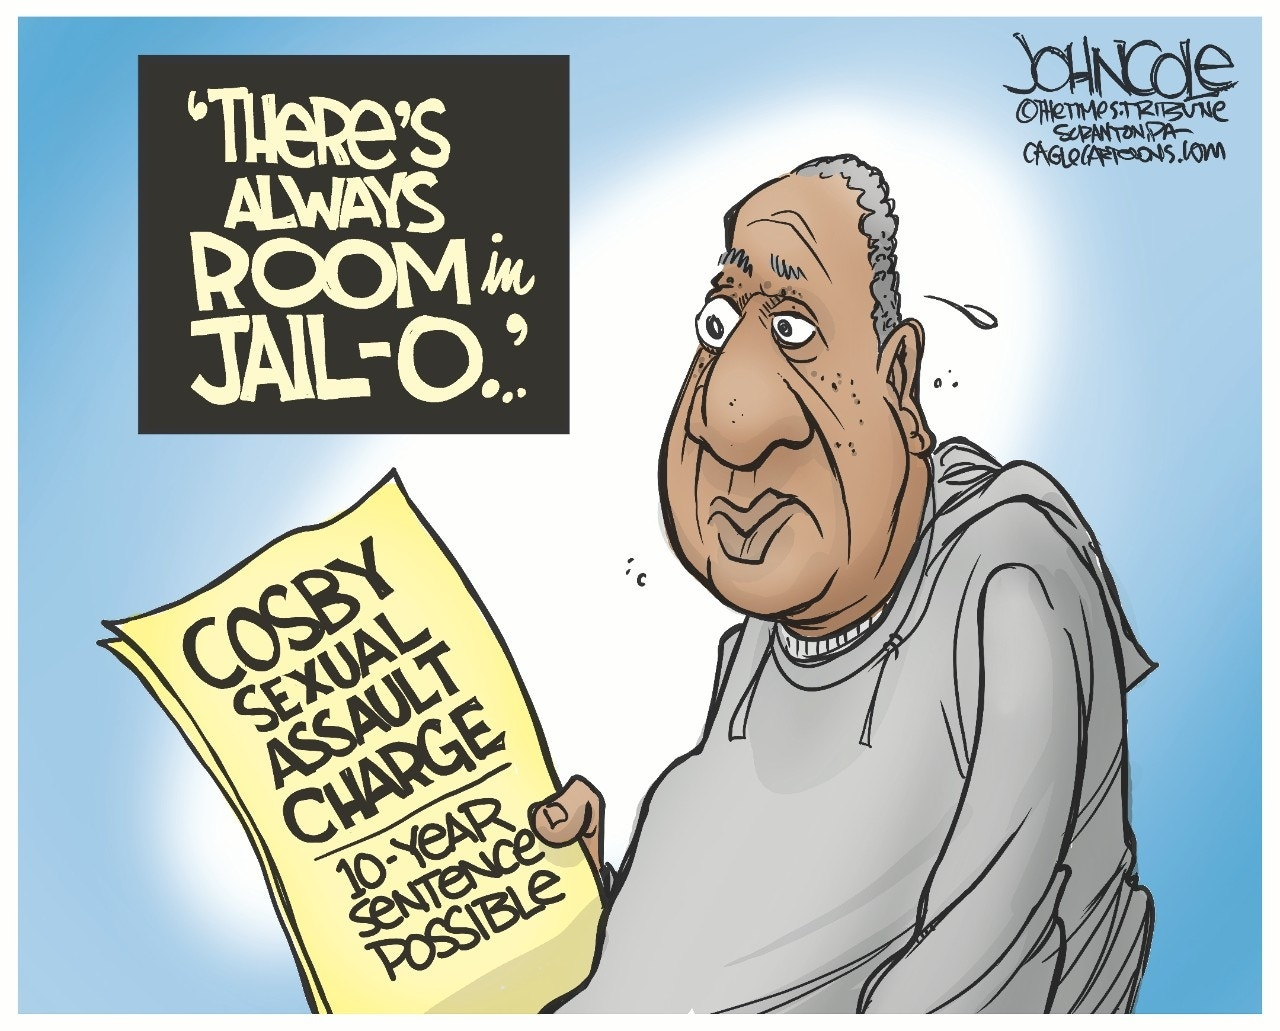 Cosby charged: John Cole, The Scranton Times-Tribune